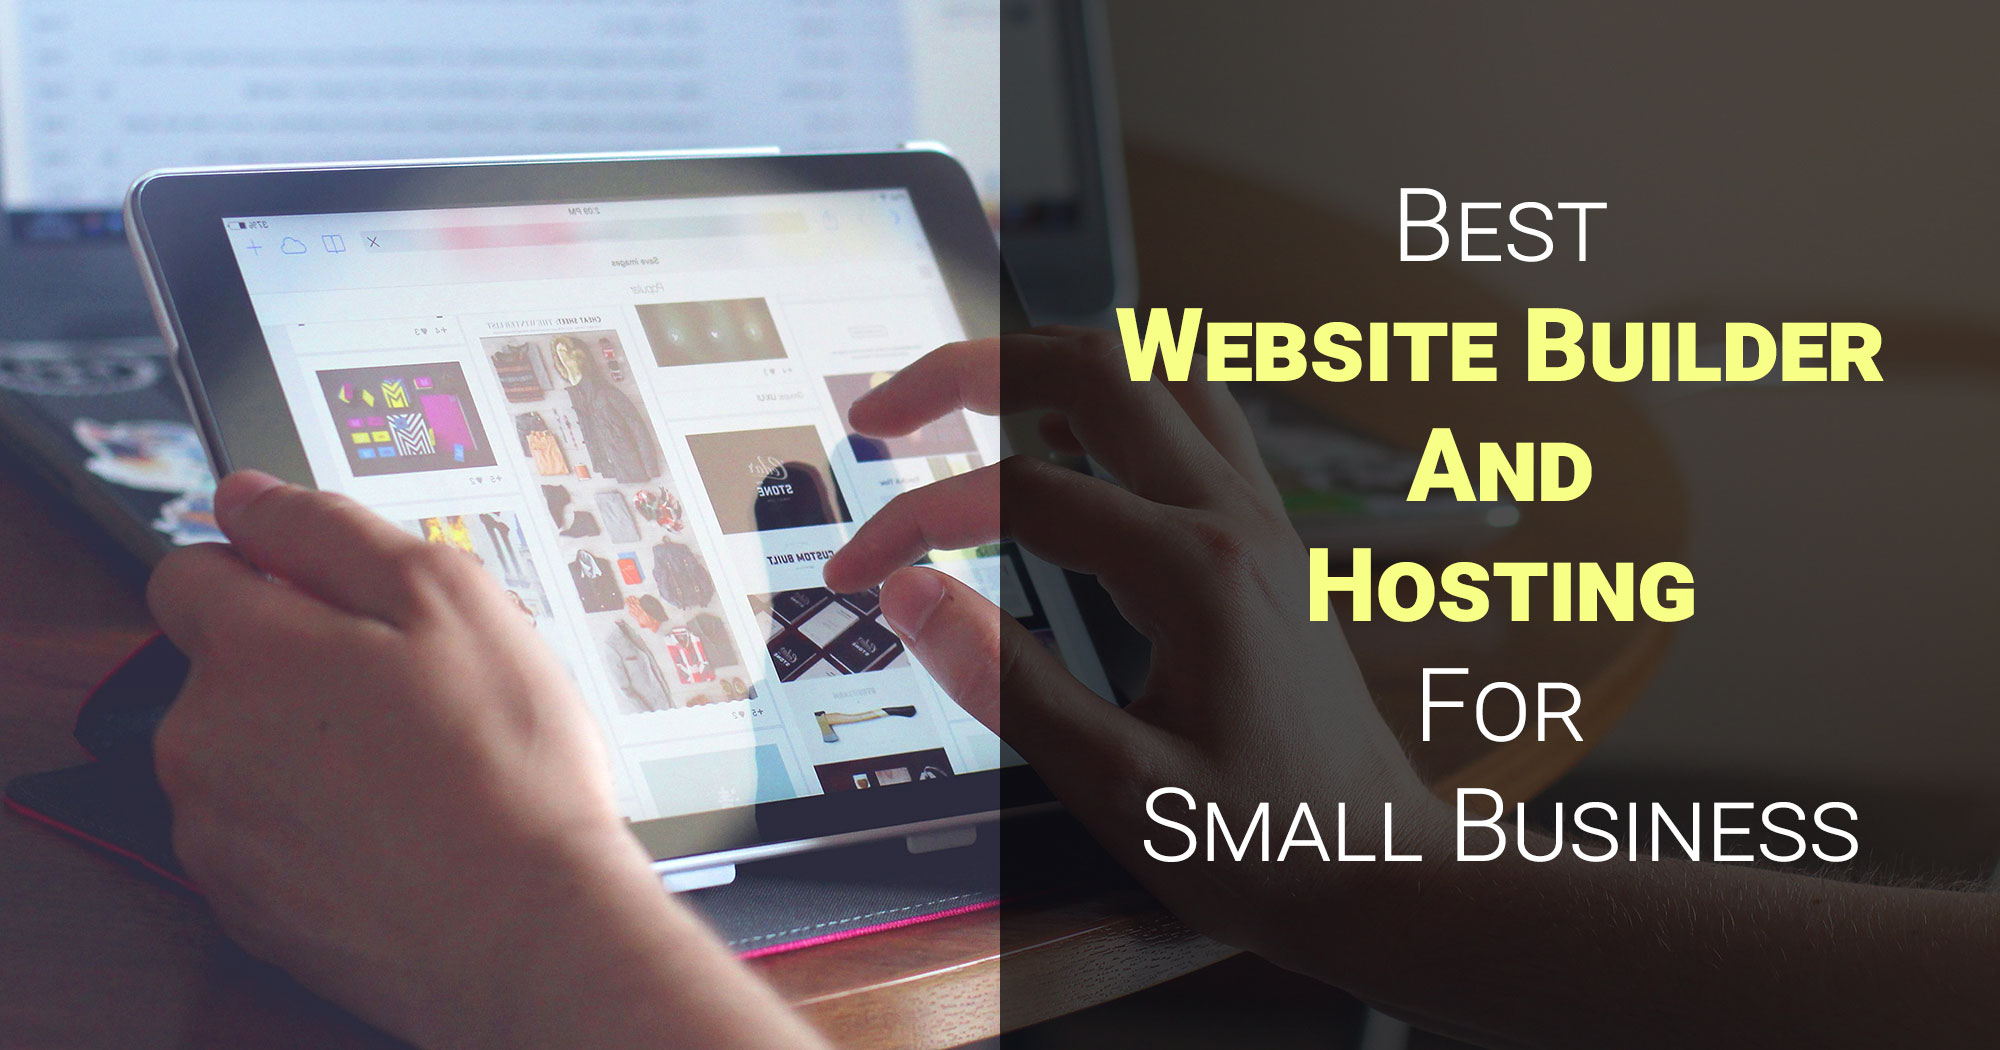 Best Website Builder And Hosting For Small Business